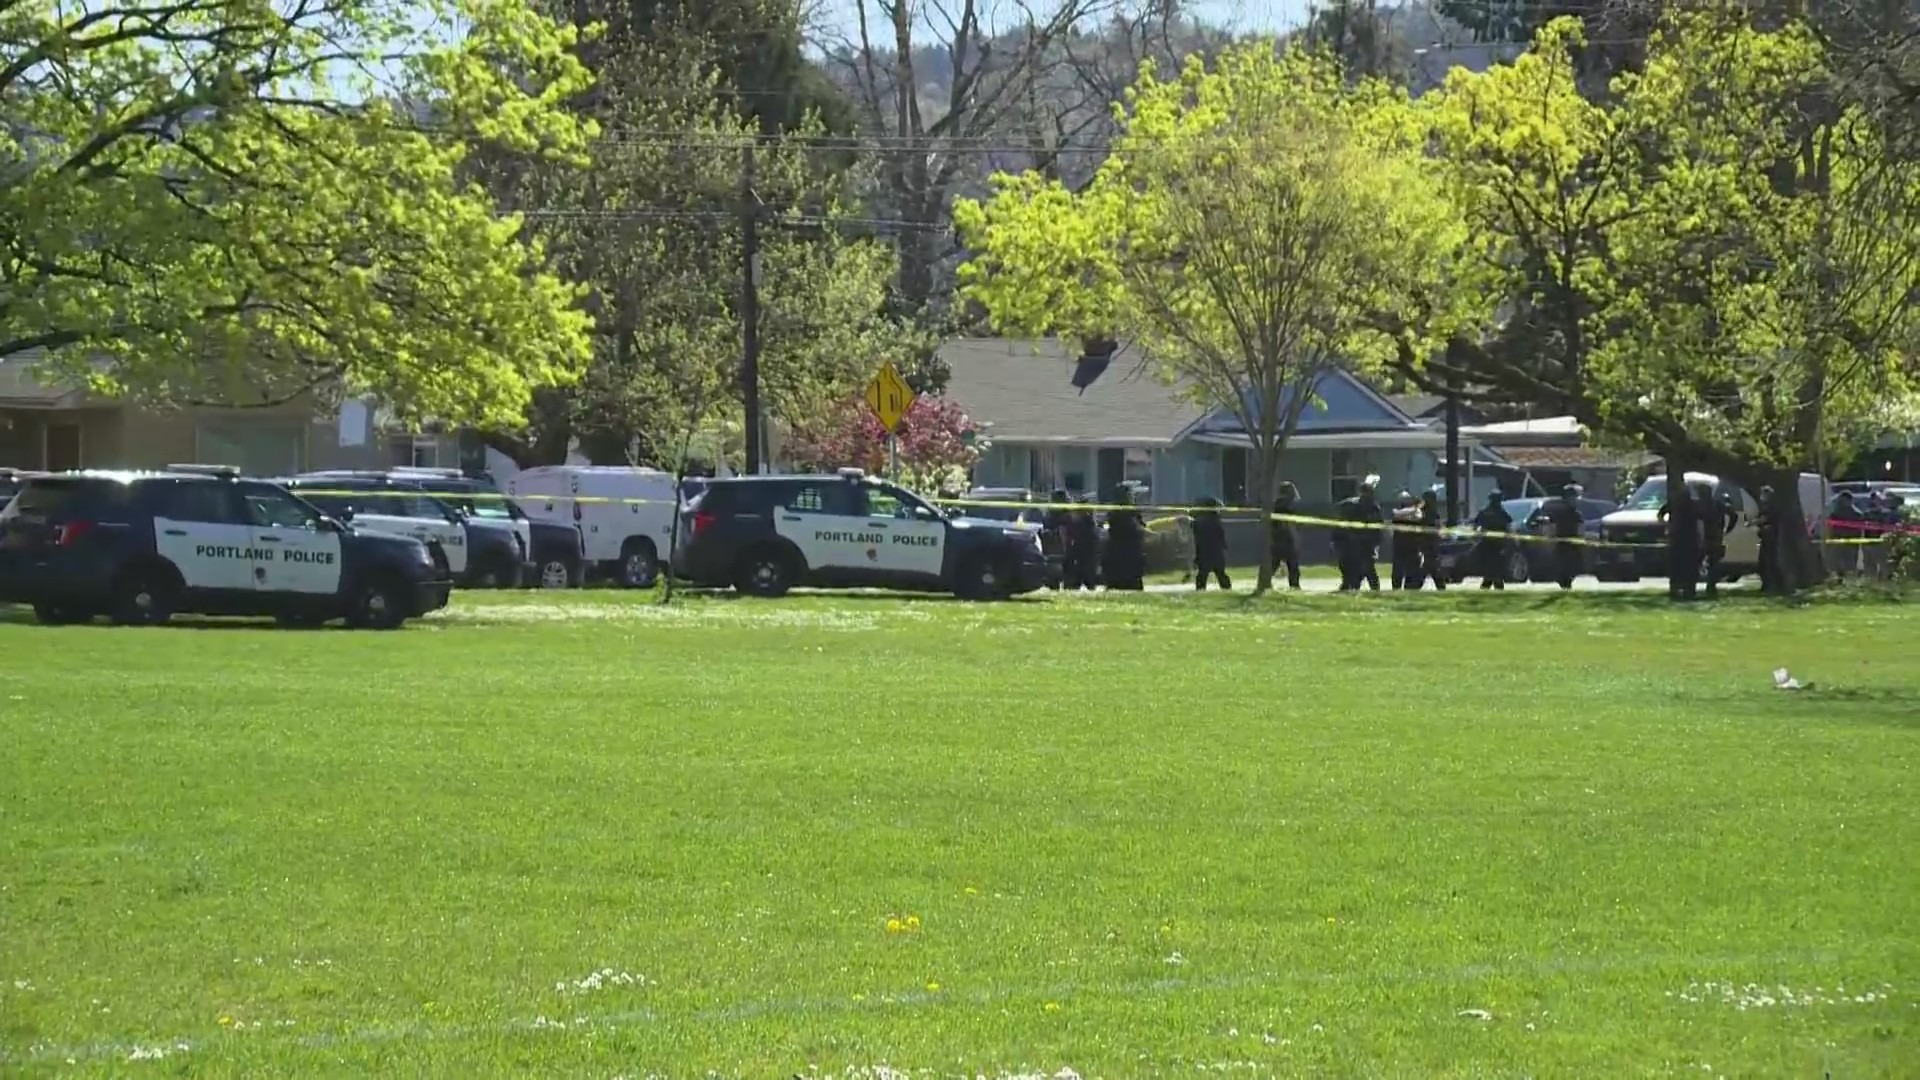 One person was shot by police at Lents Park on April 16, 2021. (KOIN)